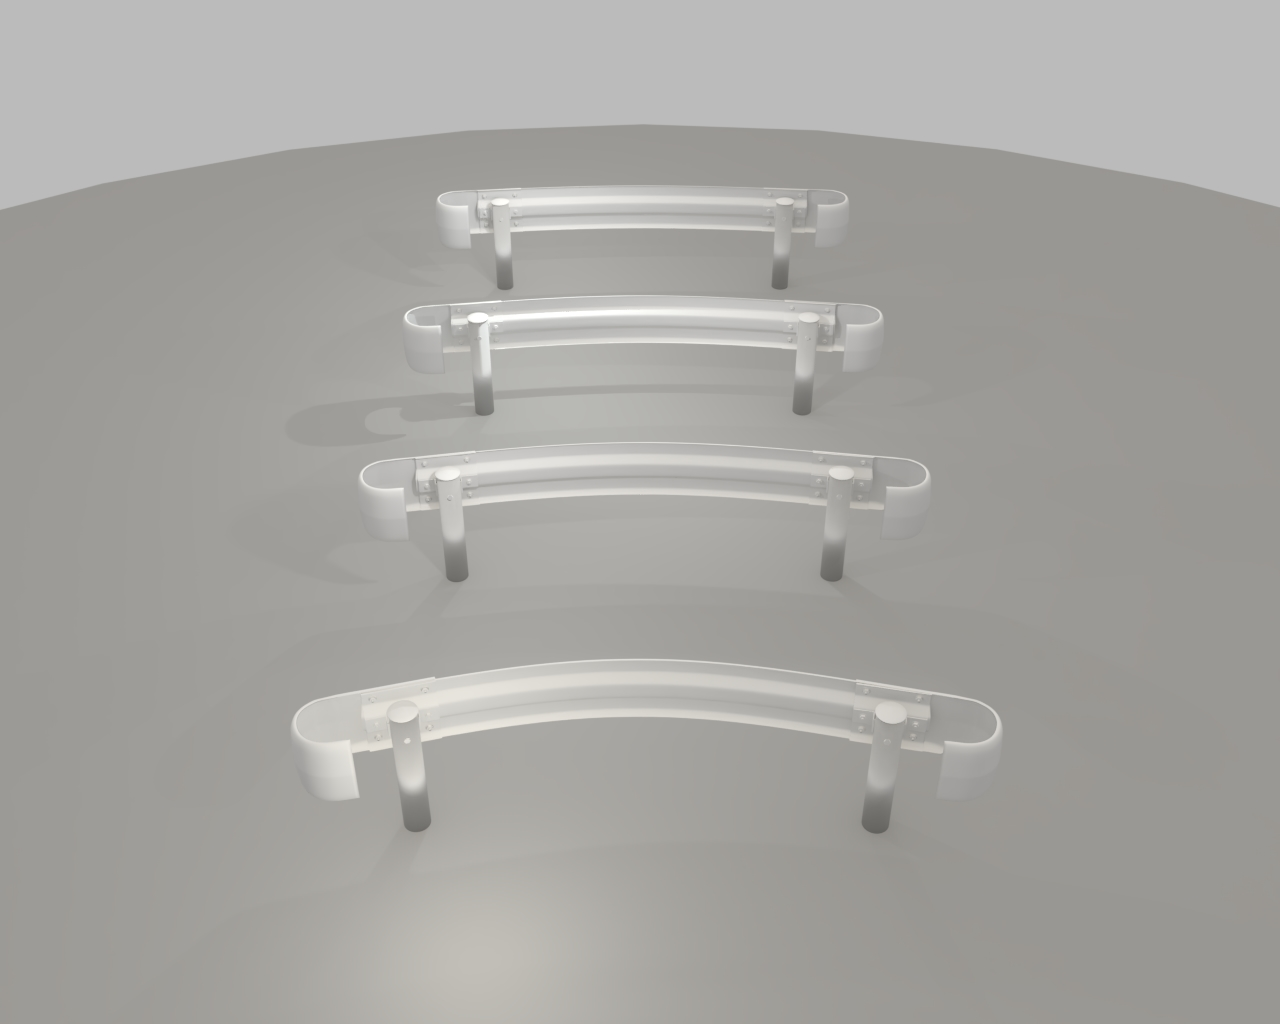 guardrail curved in japan 3d model dxf fbx obj 282237